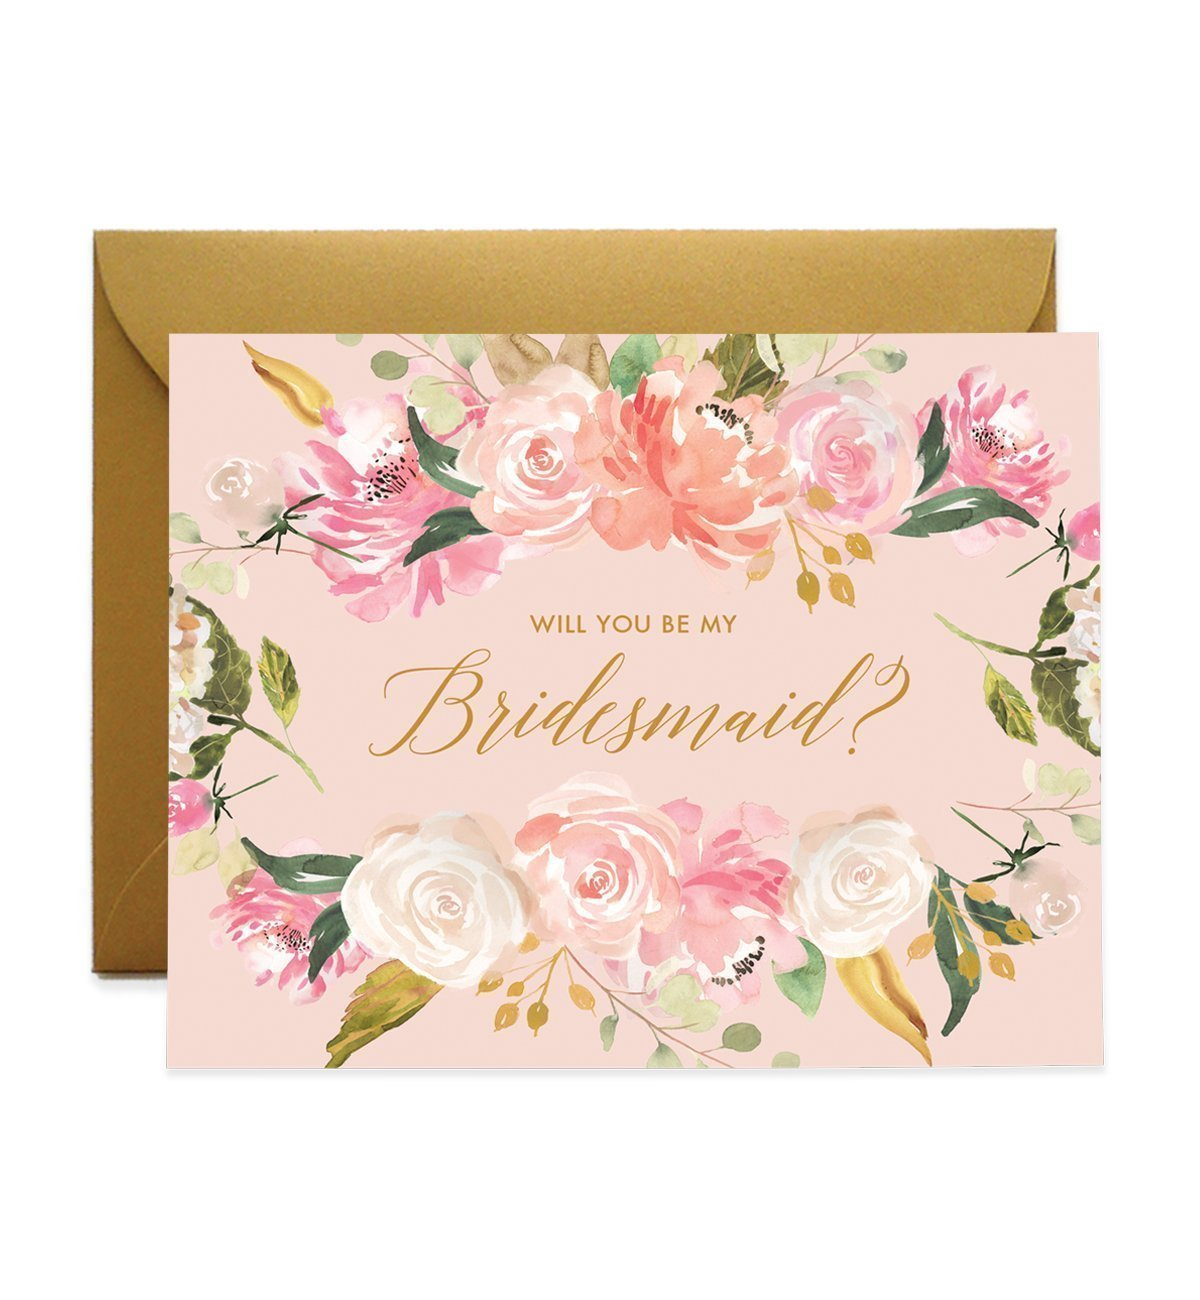 Gorgeous Bridesmaid Proposal Cards Will You Be My Brides Maid Box Pack (Set of 5) Pink Watercolor Floral Flower Five Wedding Engaged Bridal Party Cards & Luxe Antique Gold Shimmer Envelopes CW0004-1